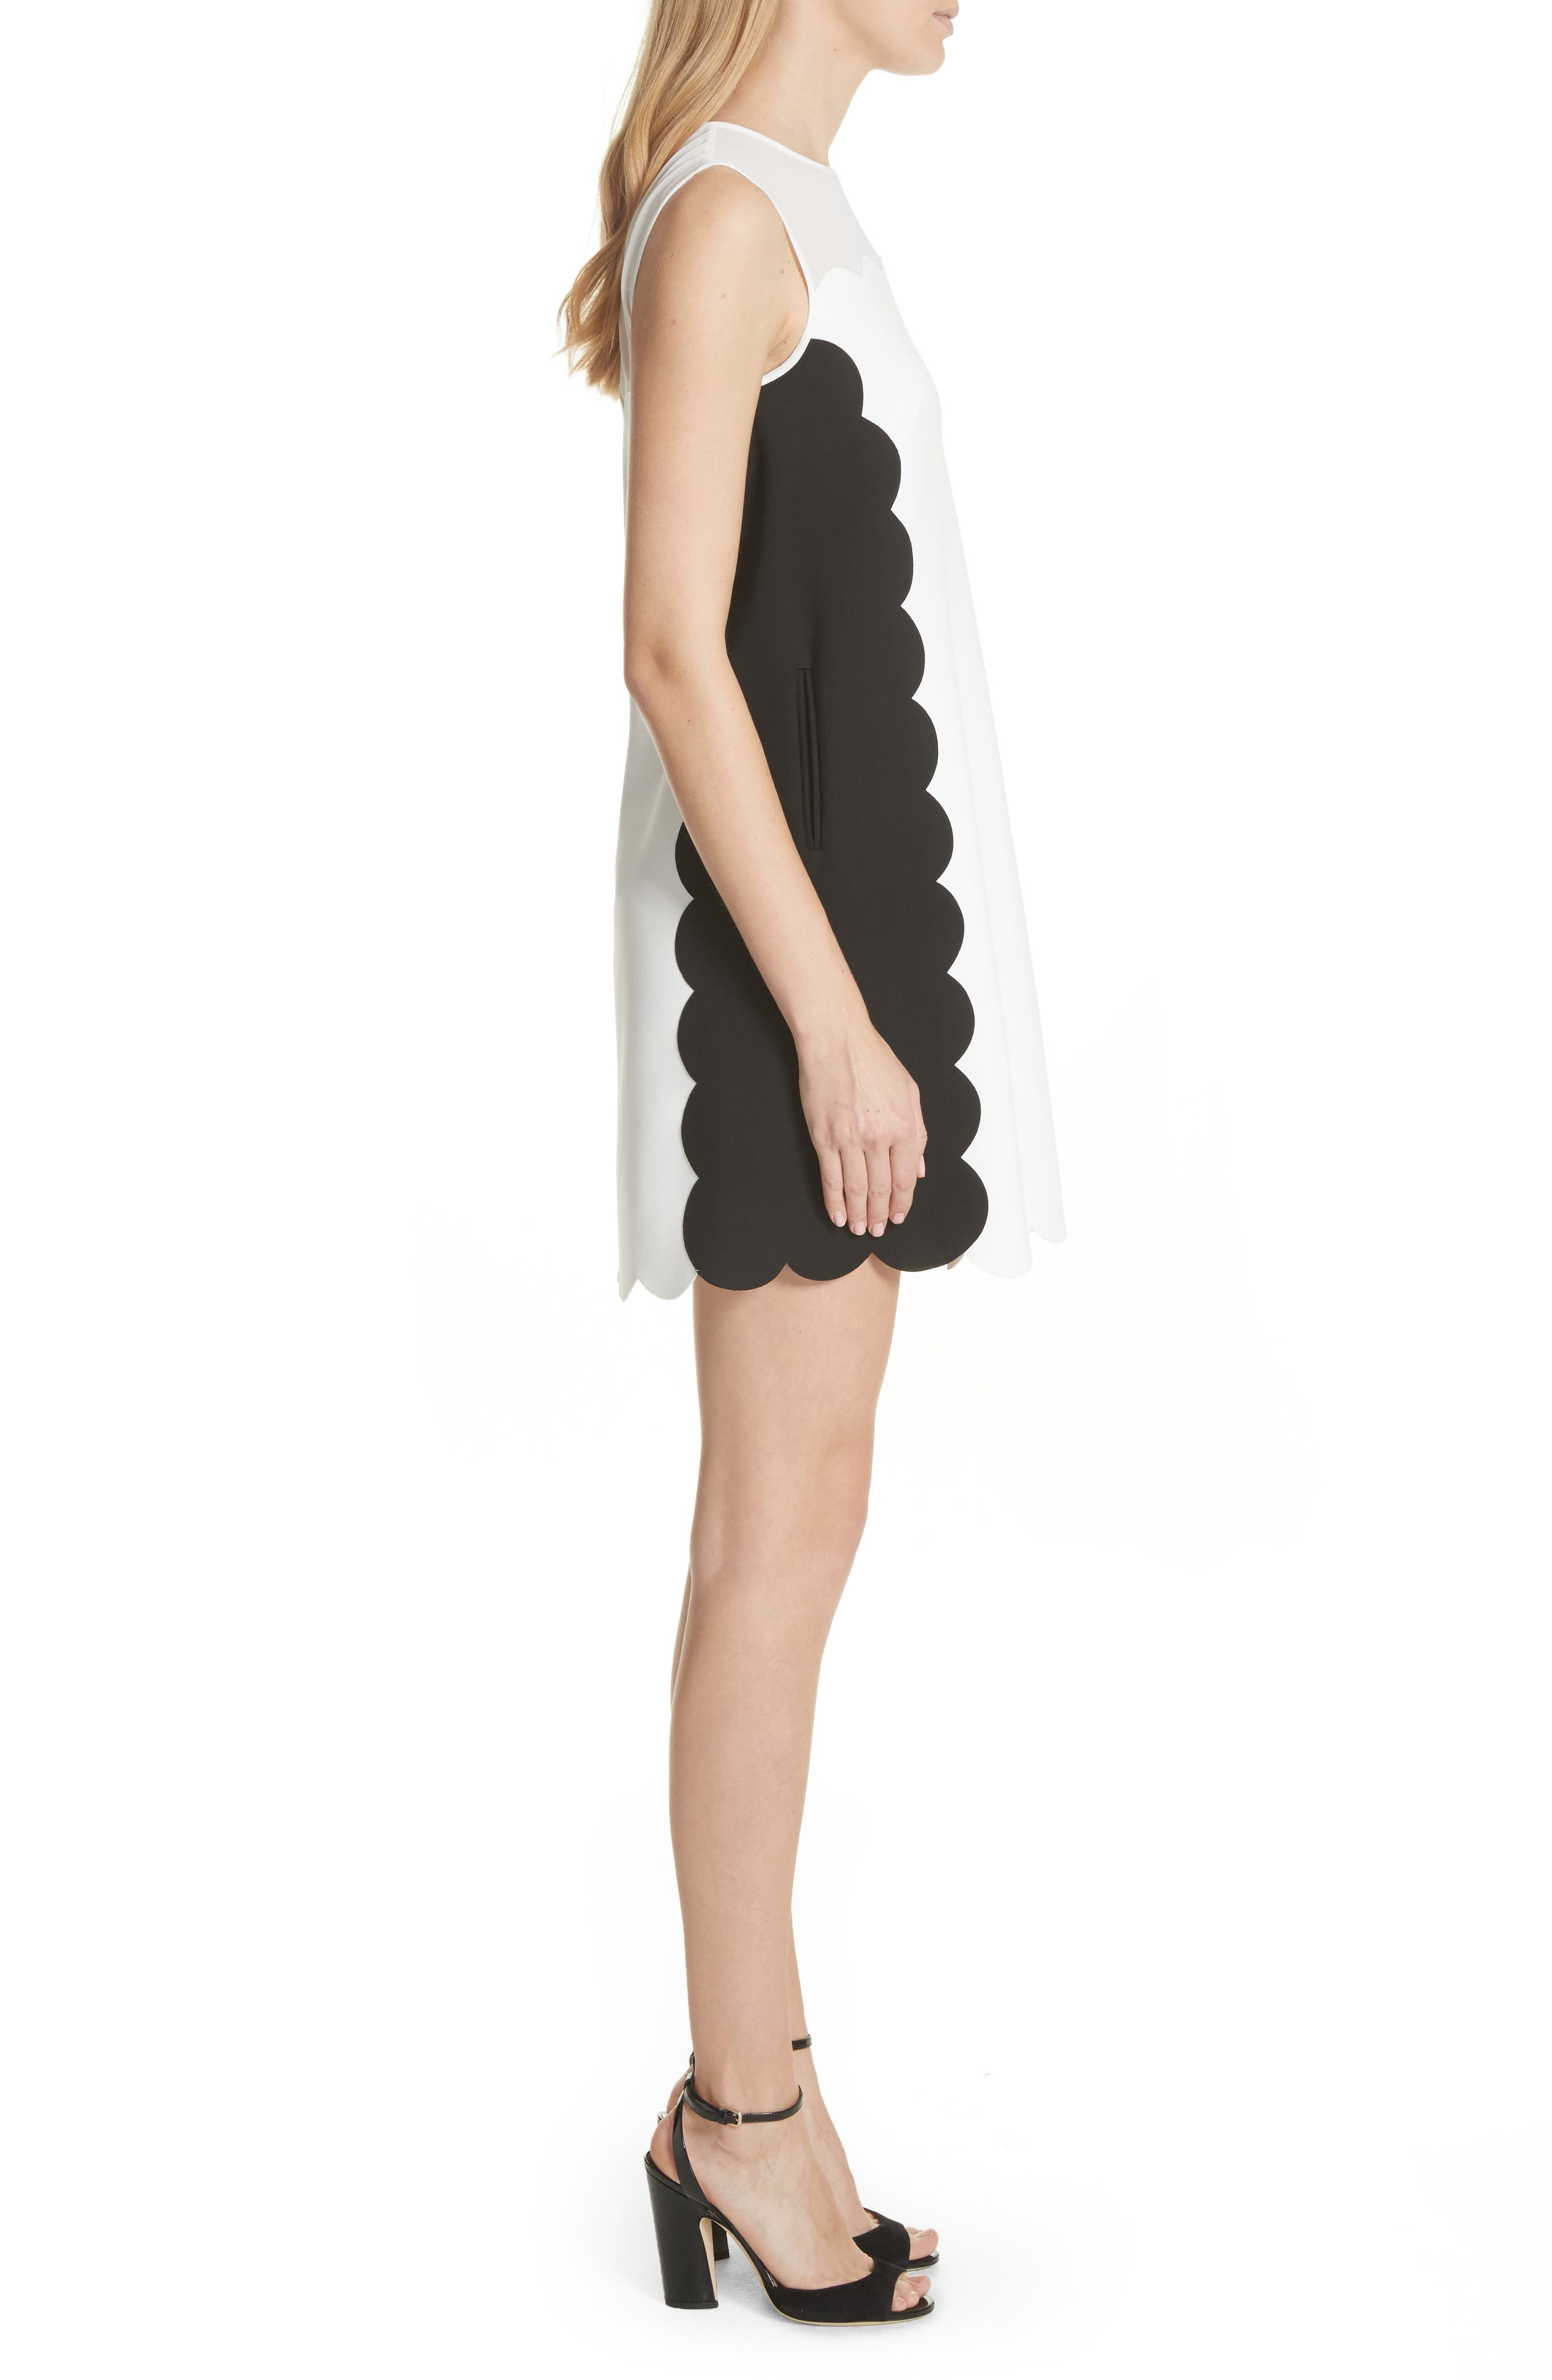 TED BAKER LONDON,                             Contrast Scallop Overlay A-Line Dress,                             Alternate thumbnail 3, color,                             100